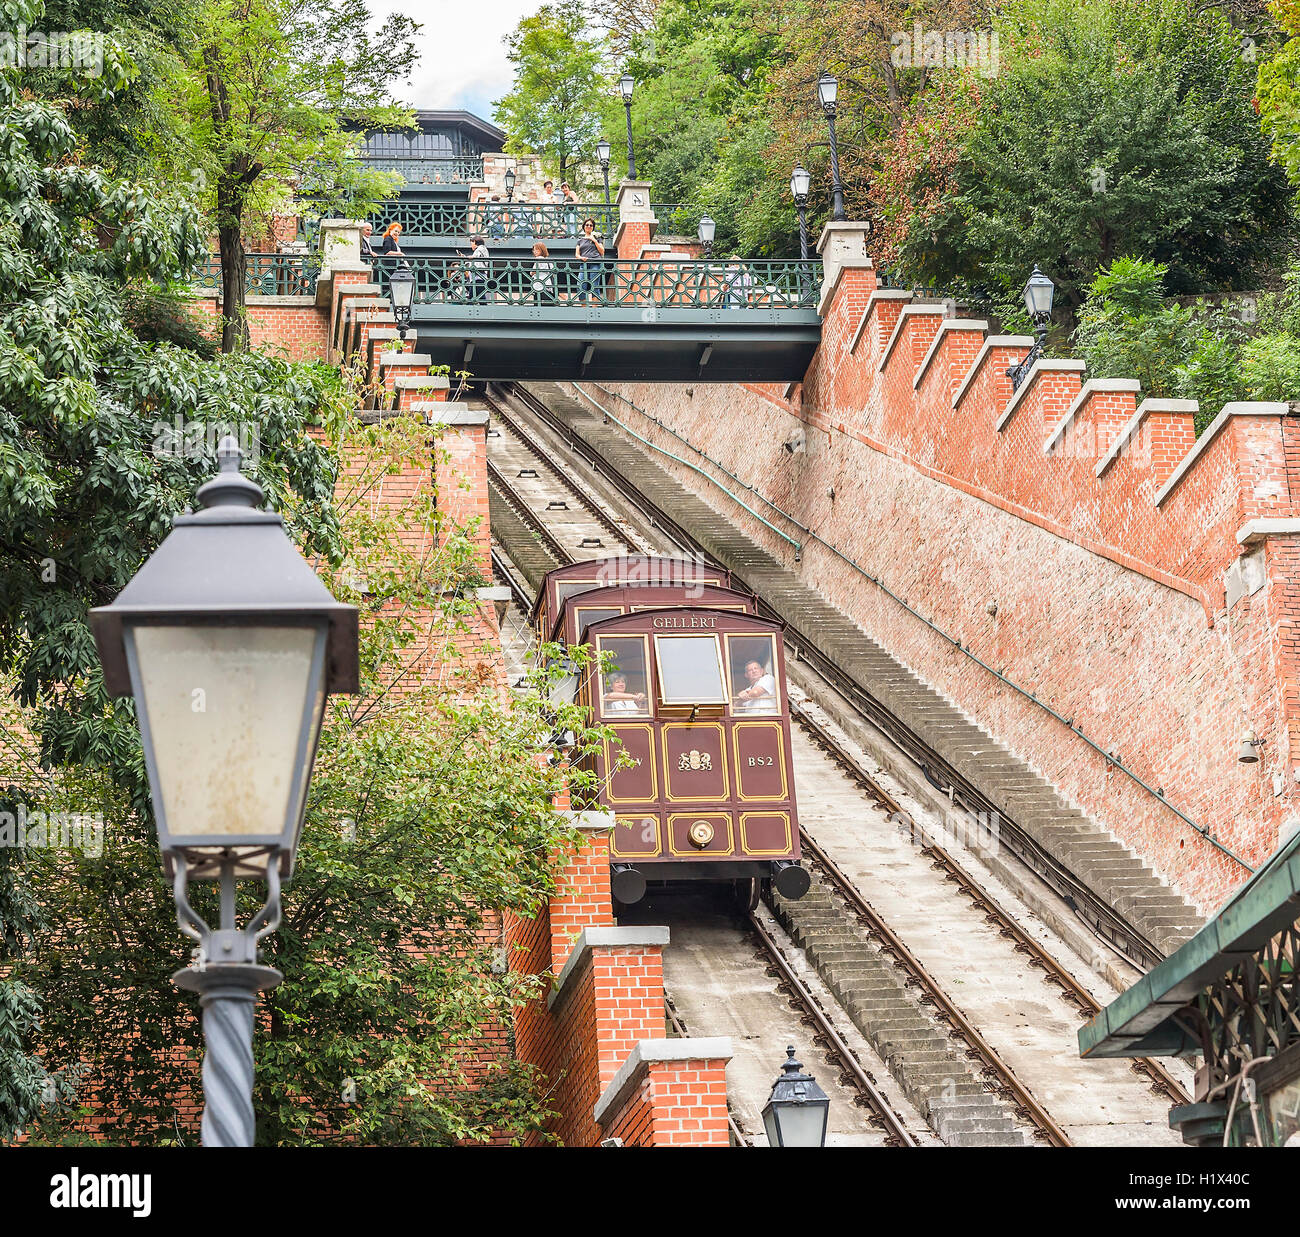 BUDAPEST, SEPTEMBER 18: Modular cabins cable car on Castle Hill on September 18, 2016 in Budapest, Hungary. Stock Photo